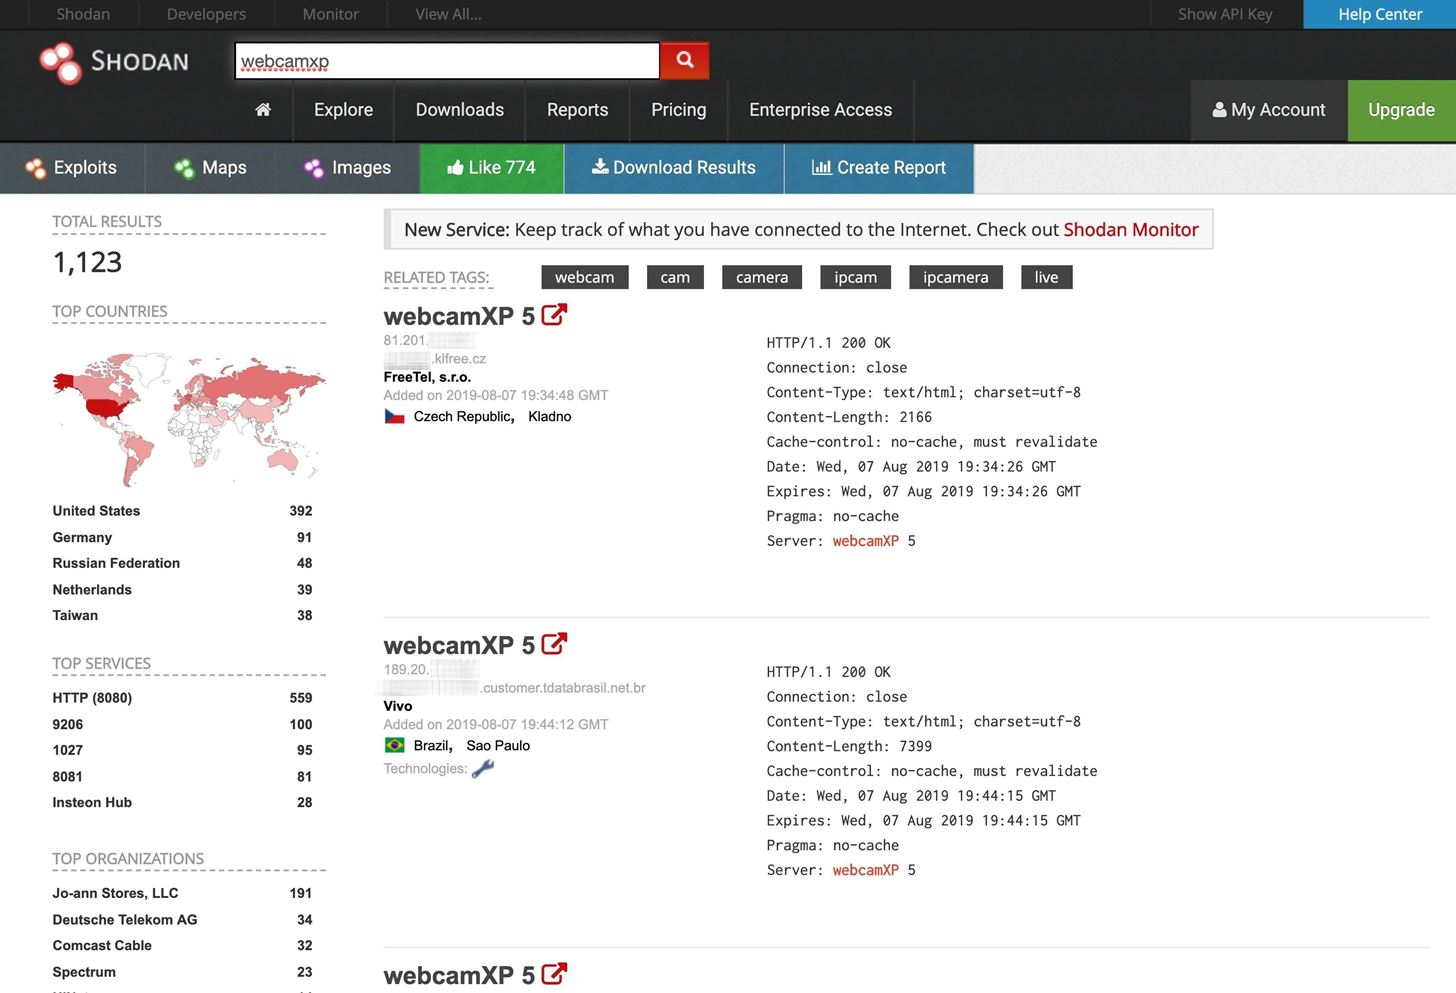 How to Find Vulnerable Webcams Across the Globe Using Shodan